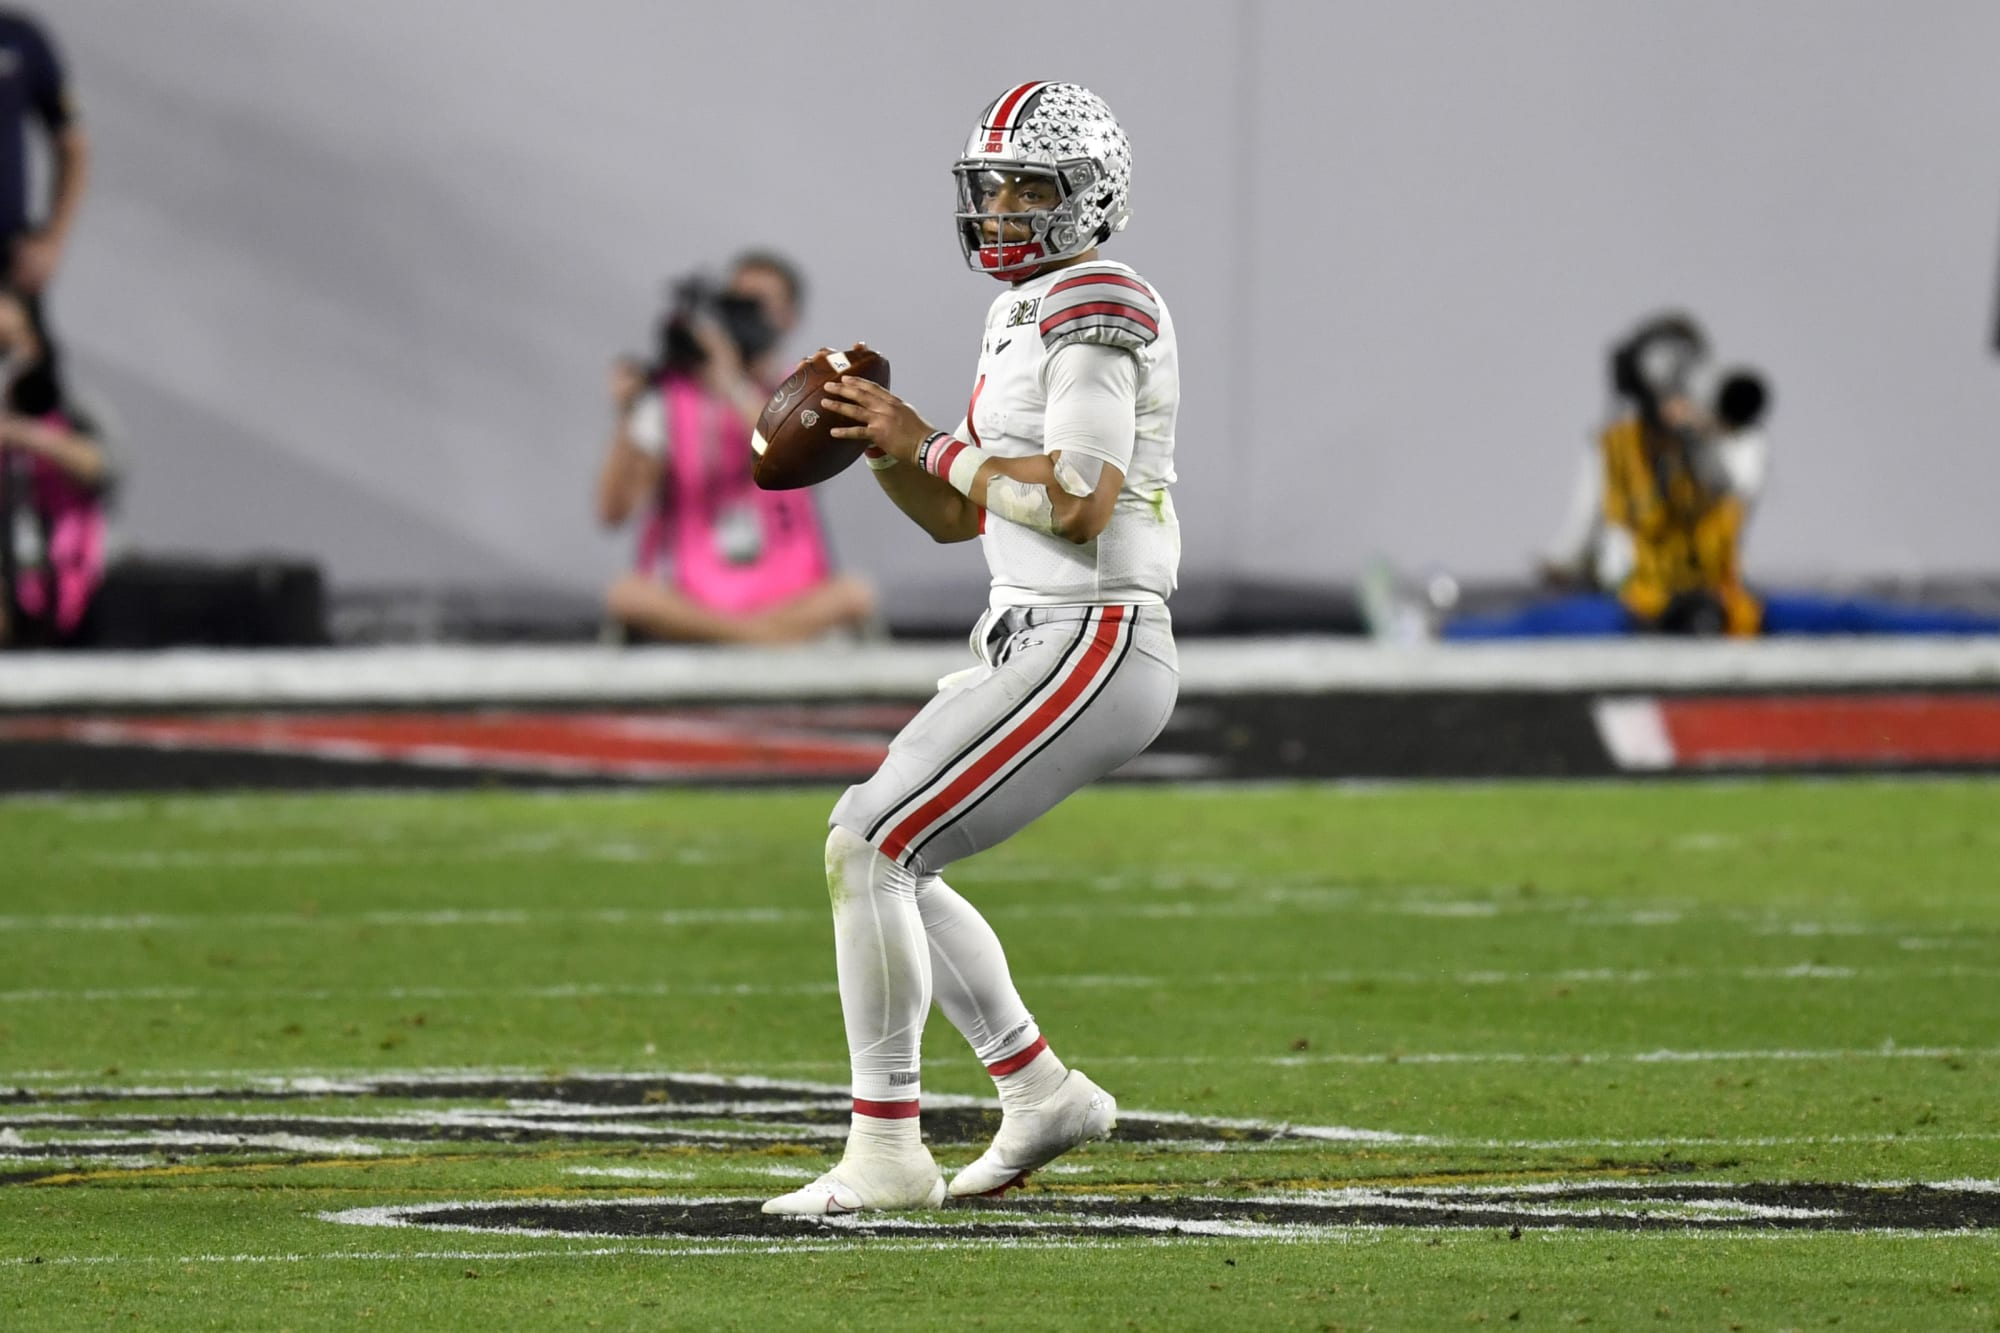 First look at Justin Fields in Chicago Bears uniform (Photo)